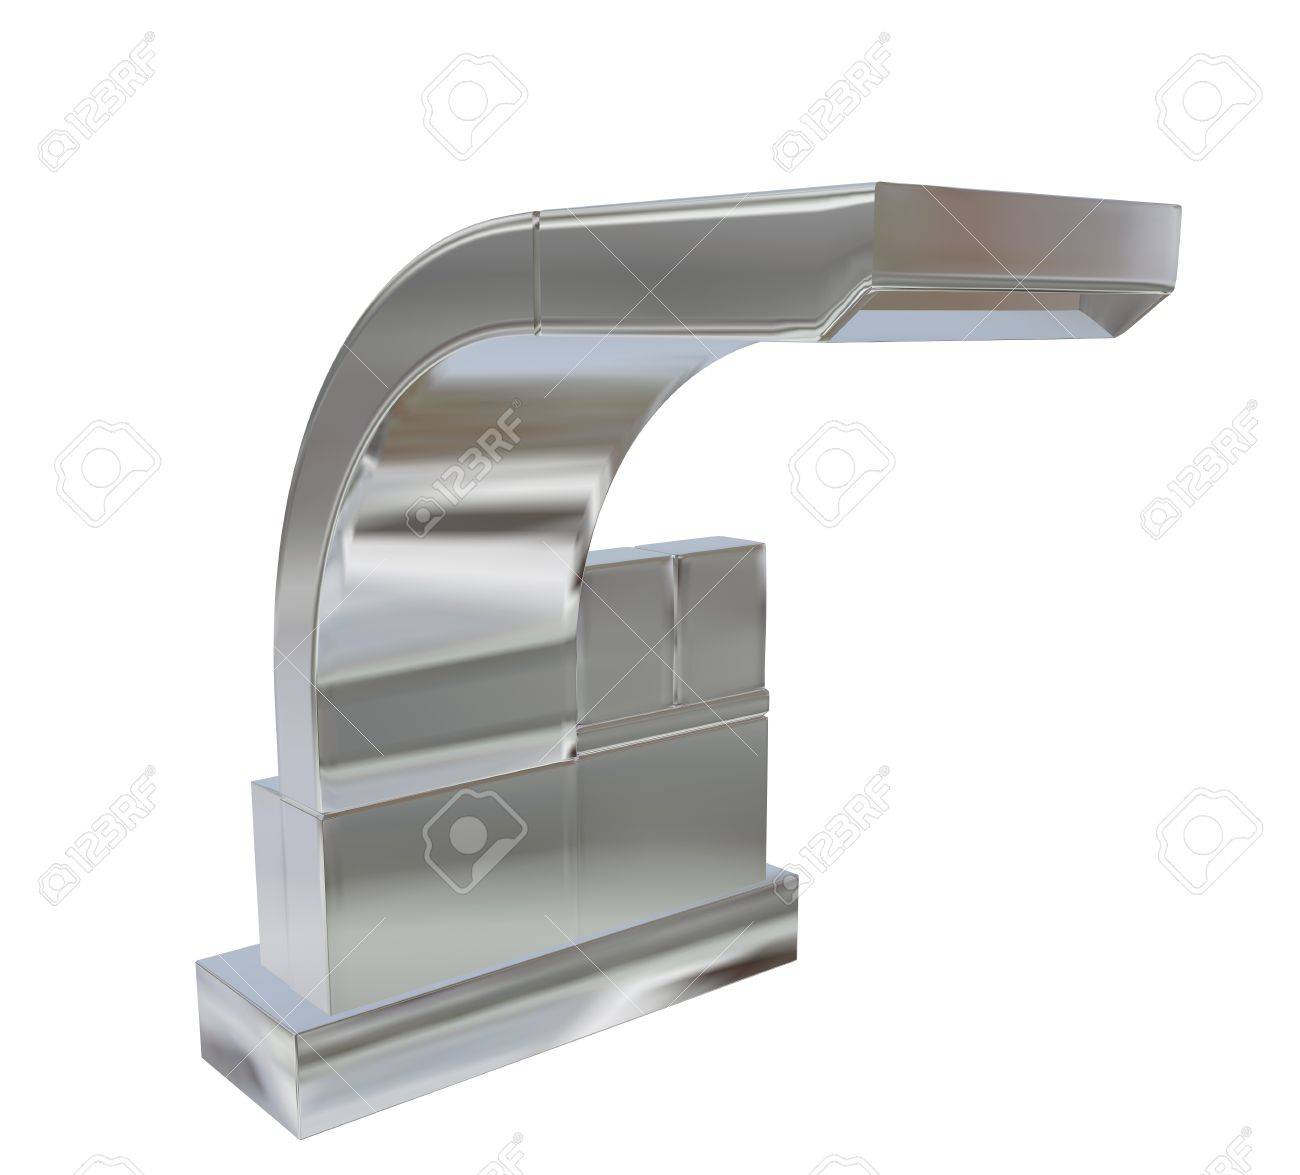 Modern Square Faucet With Chrome Or Stainless Steel Finishing, 3d  Illustration, Isolated Against A